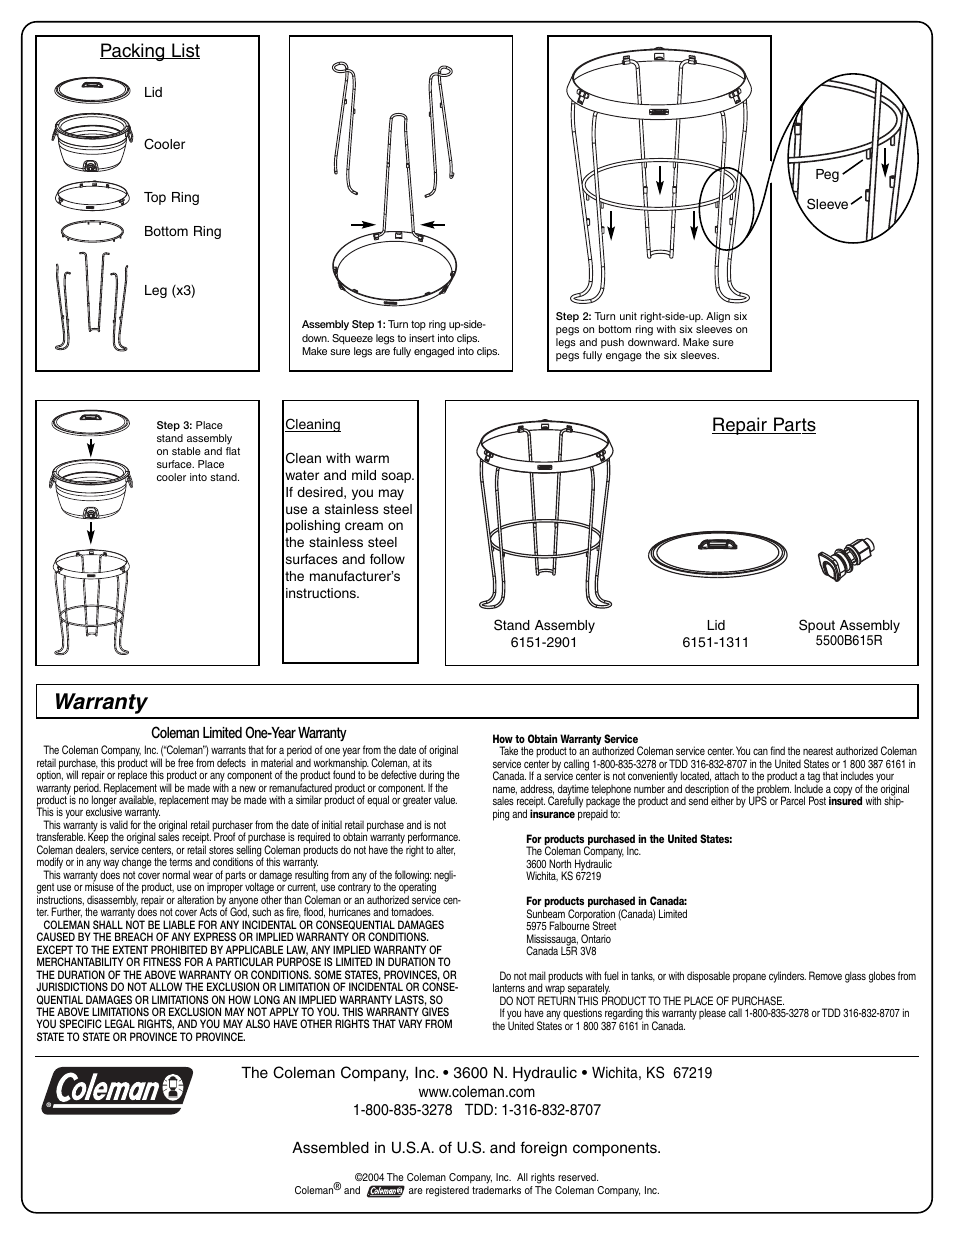 Warranty  Packing List  Repair Parts